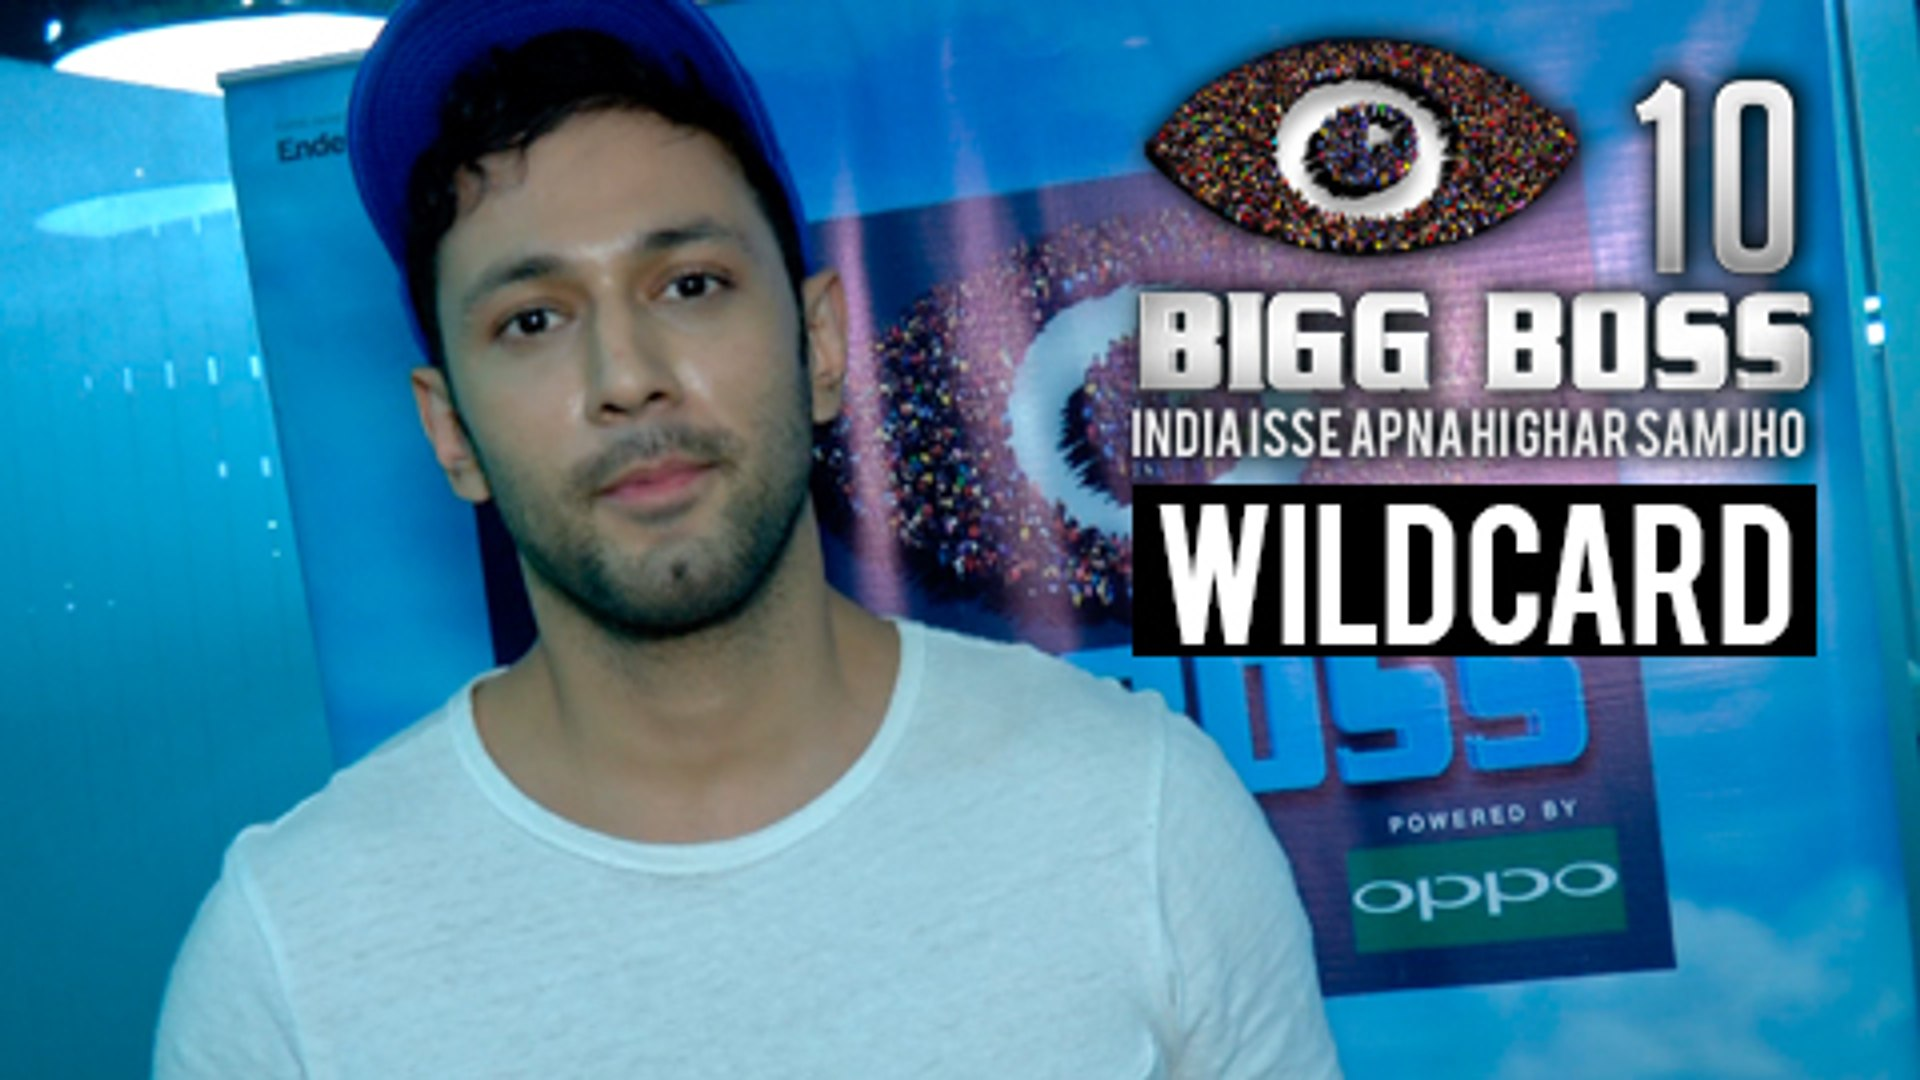 EXCLUSIVE  Sahil Anand Enters Bigg Boss House  Wild Card Entry  Bigg Boss 10